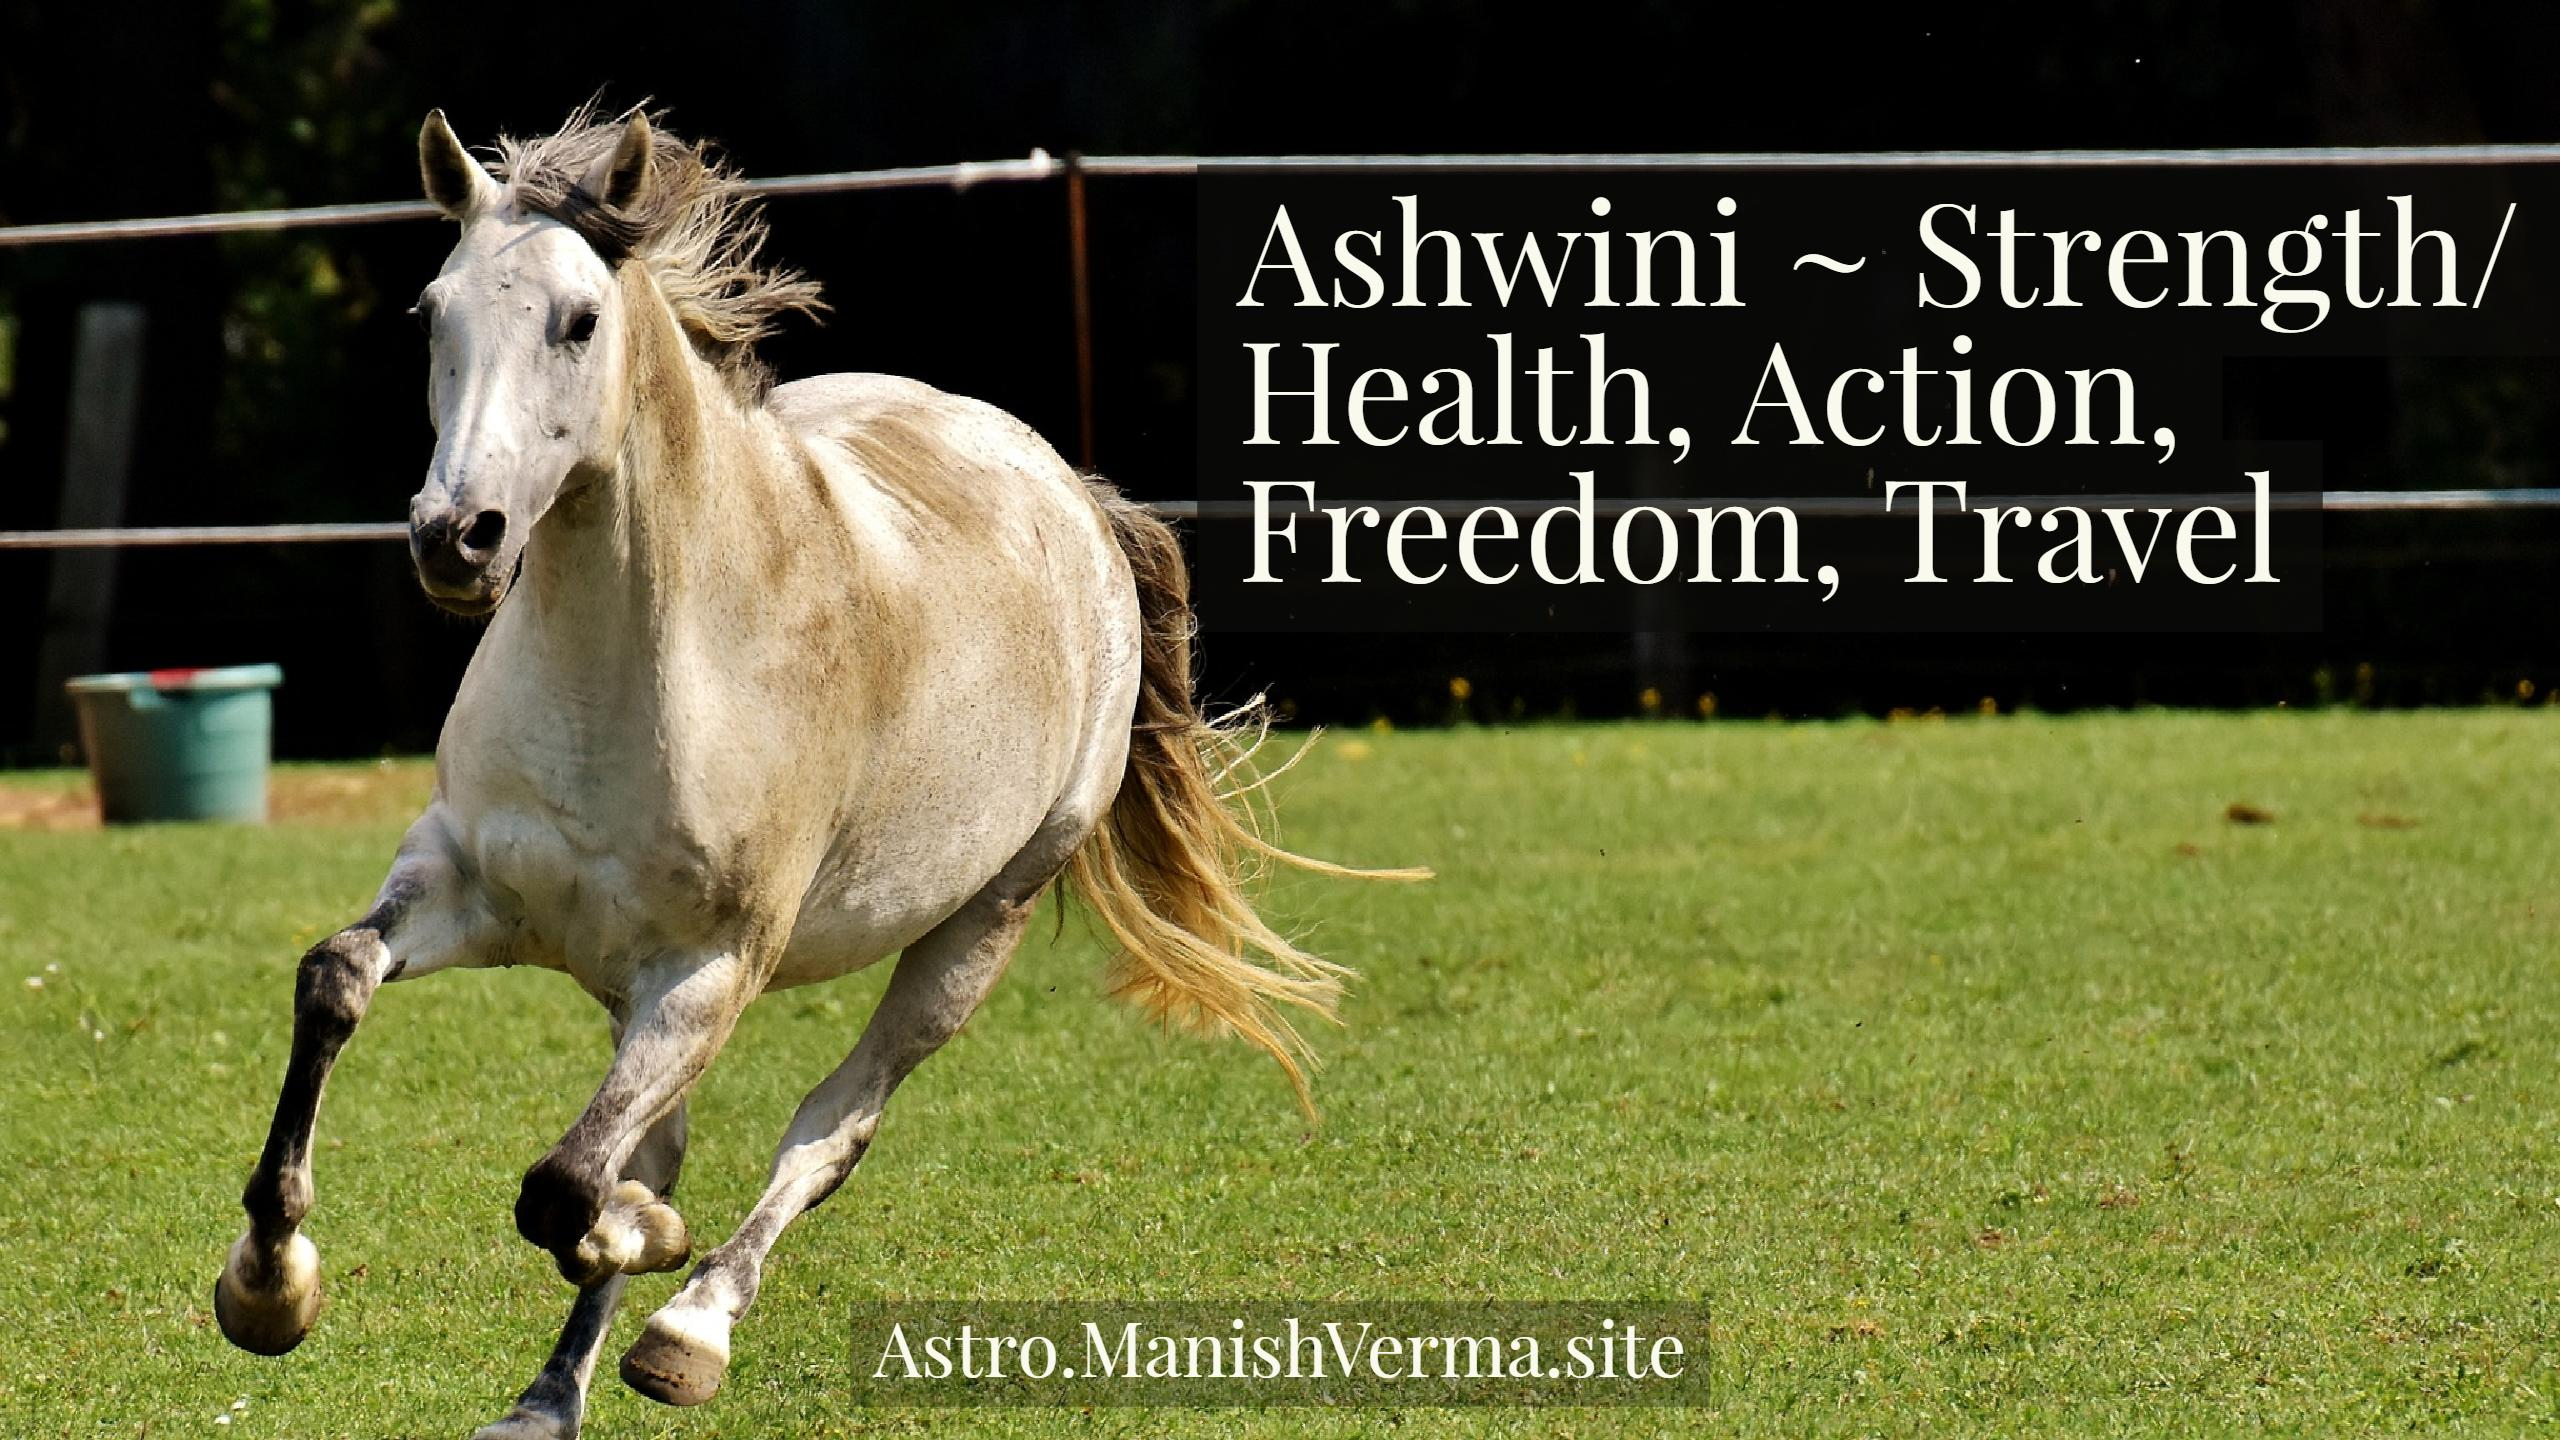 Ashwini Nakshatra ~ Strength, Health, Action, Freedom, Travel